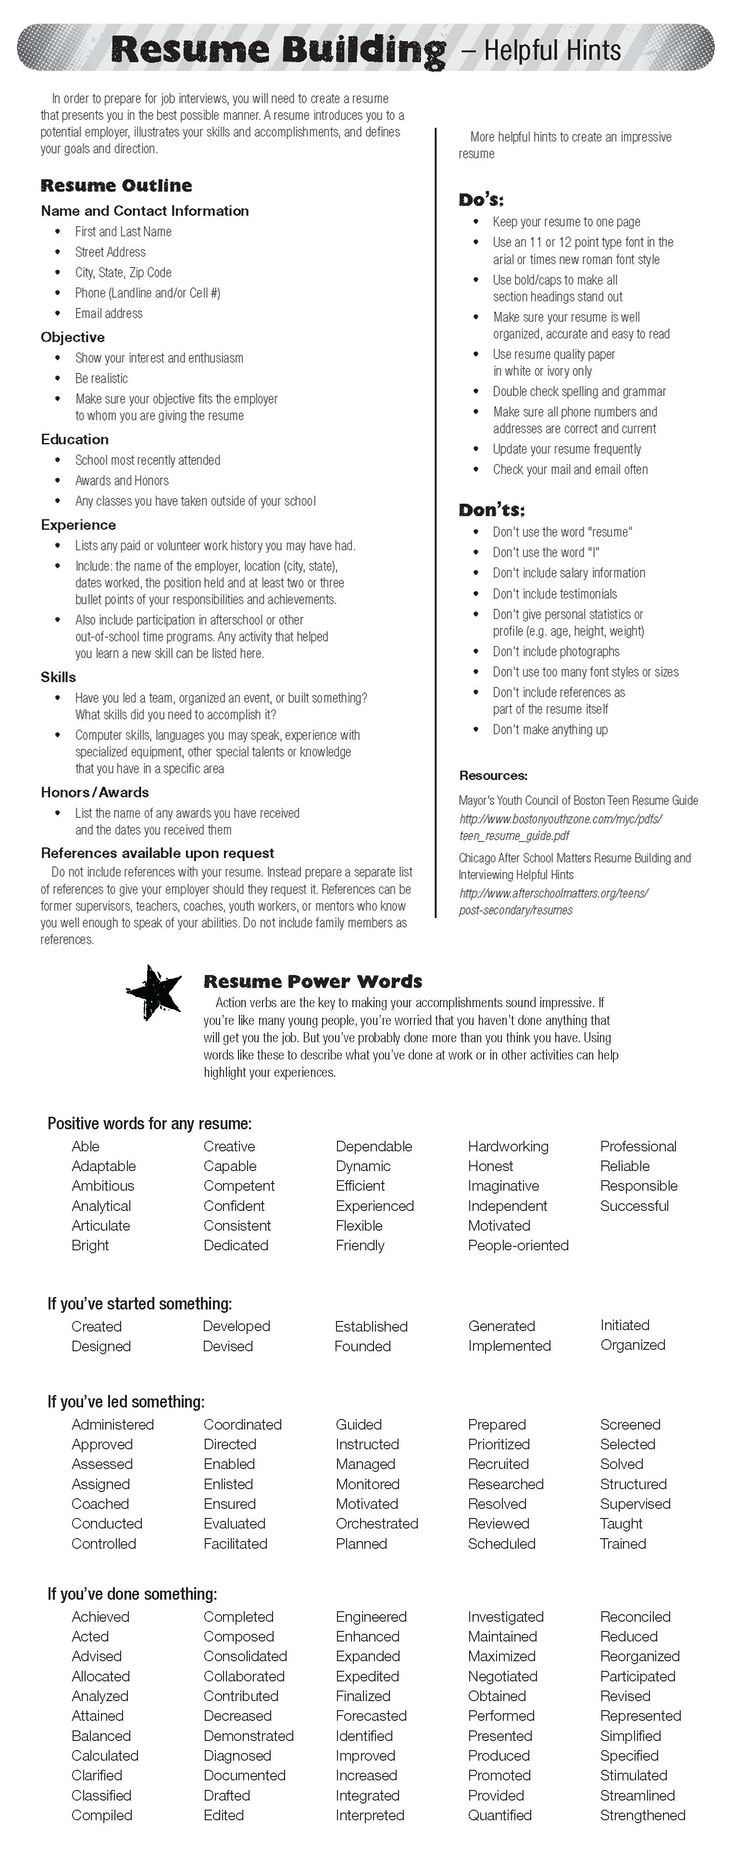 Opposenewapstandardsus  Ravishing  Ideas About Resume On Pinterest  Cv Format Resume Cv And  With Great  Ideas About Resume On Pinterest  Cv Format Resume Cv And Resume Templates With Lovely Best Resume Cover Letters Also Nick Saban Resume In Addition Data Analyst Resumes And Sunday School Teacher Resume As Well As Resume Template Creative Additionally Cover Letters For A Resume From Pinterestcom With Opposenewapstandardsus  Great  Ideas About Resume On Pinterest  Cv Format Resume Cv And  With Lovely  Ideas About Resume On Pinterest  Cv Format Resume Cv And Resume Templates And Ravishing Best Resume Cover Letters Also Nick Saban Resume In Addition Data Analyst Resumes From Pinterestcom